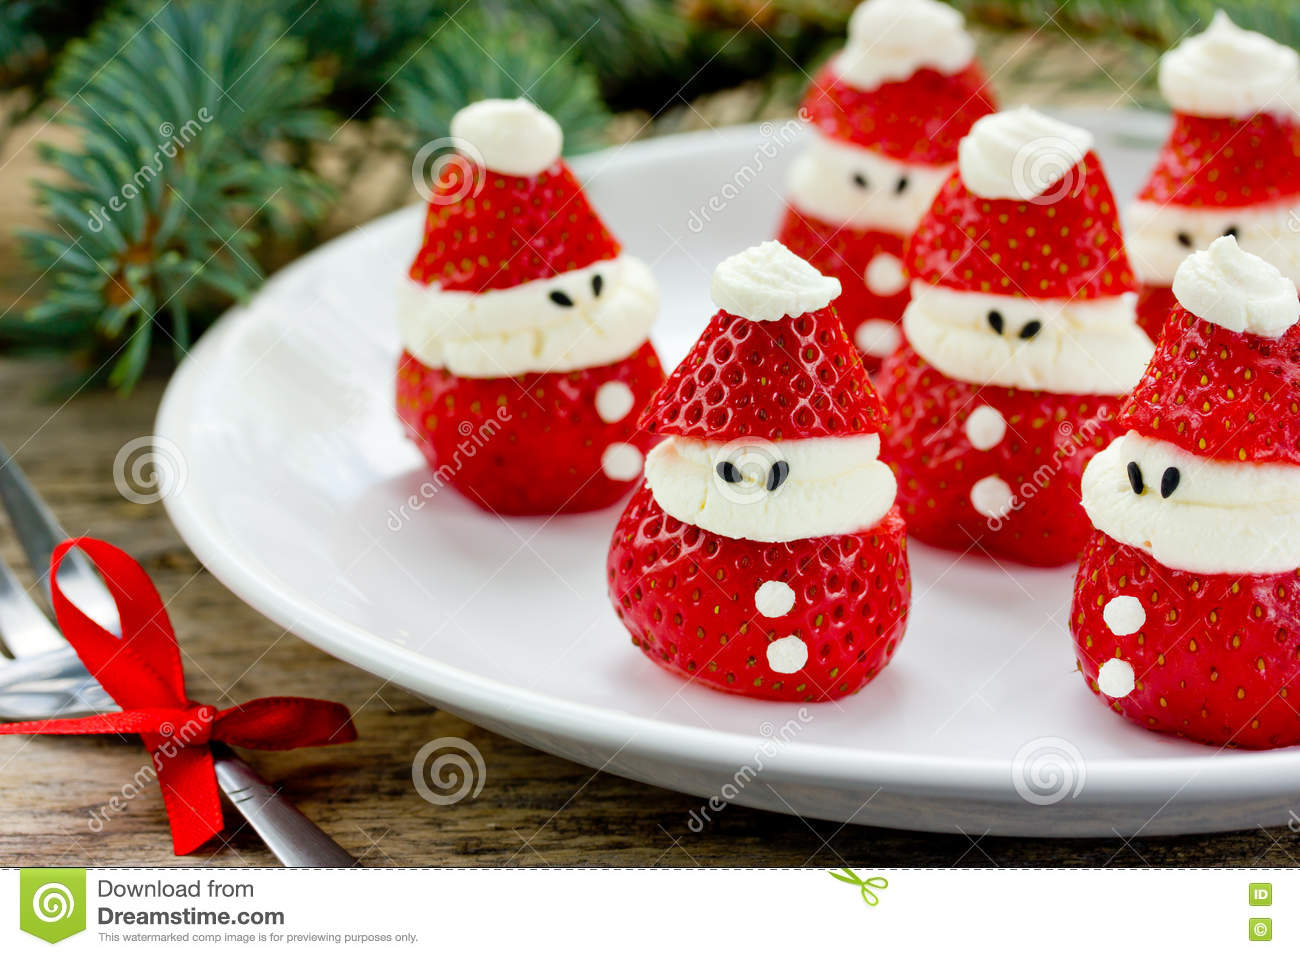 christmas party ideas for kids strawberry santa recipe - Childrens Christmas Party Decoration Ideas